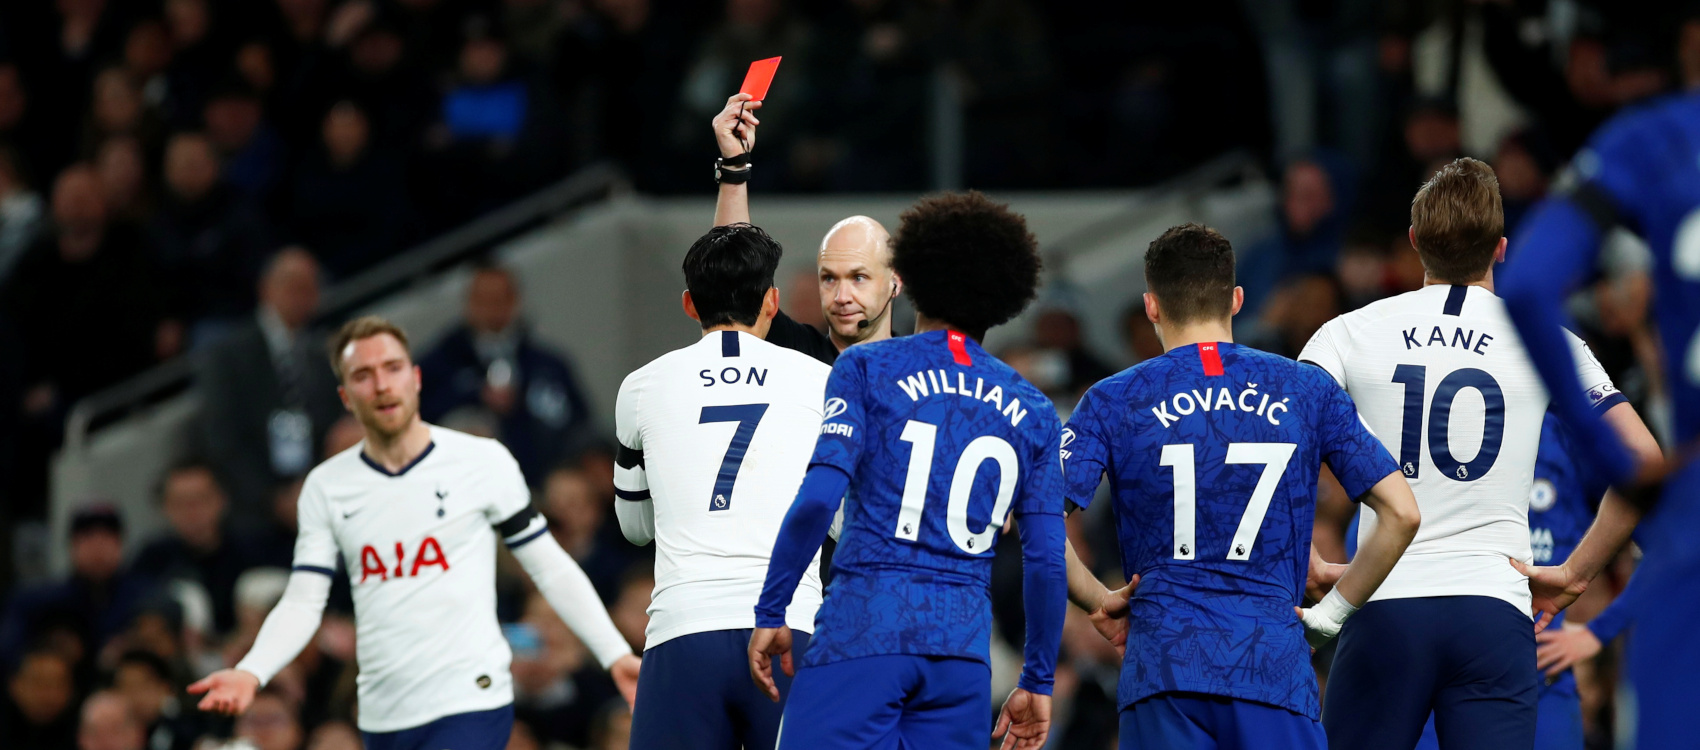 Son sent off as popular FPL assets draw a blank on an underwhelming Sunday